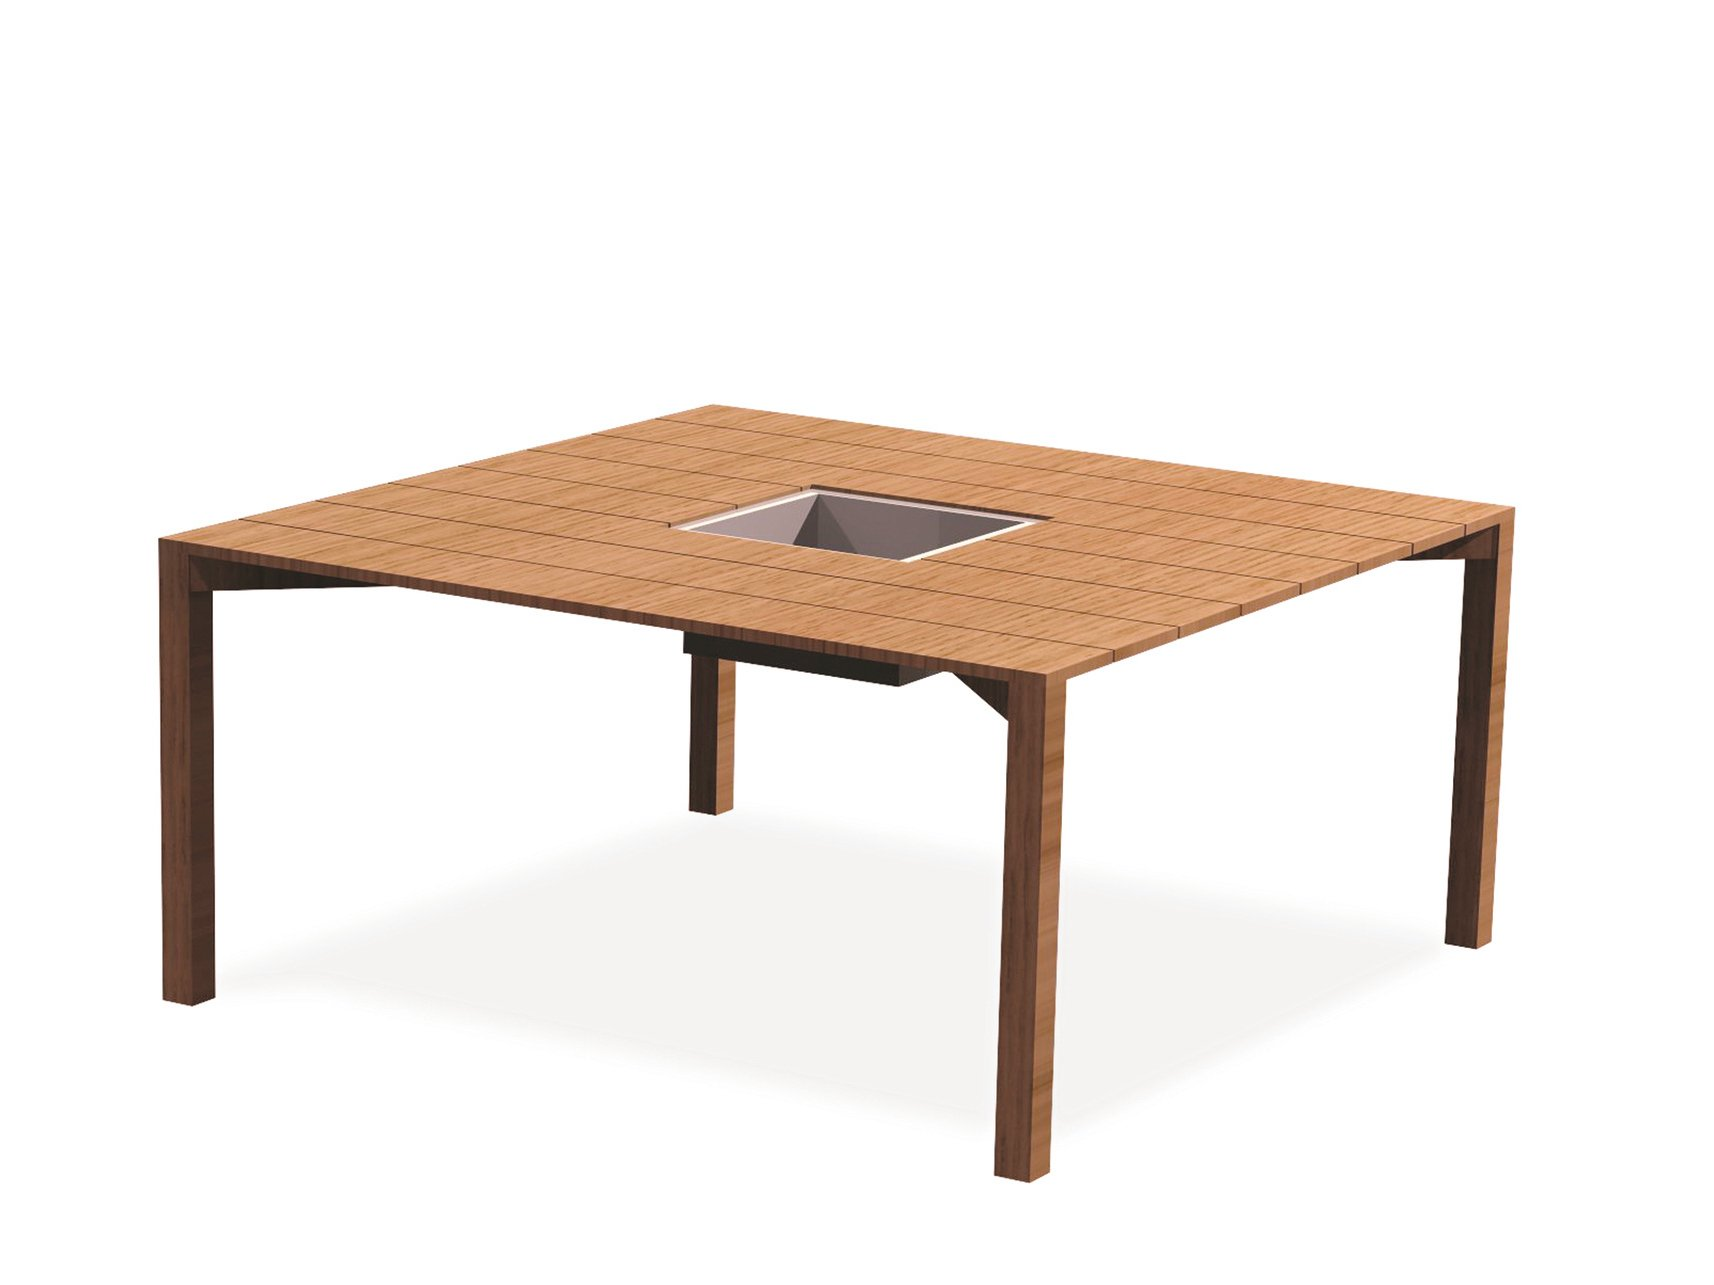 Table de jardin carr e en teck oxn collection oxn by - Table jardin en teck ...